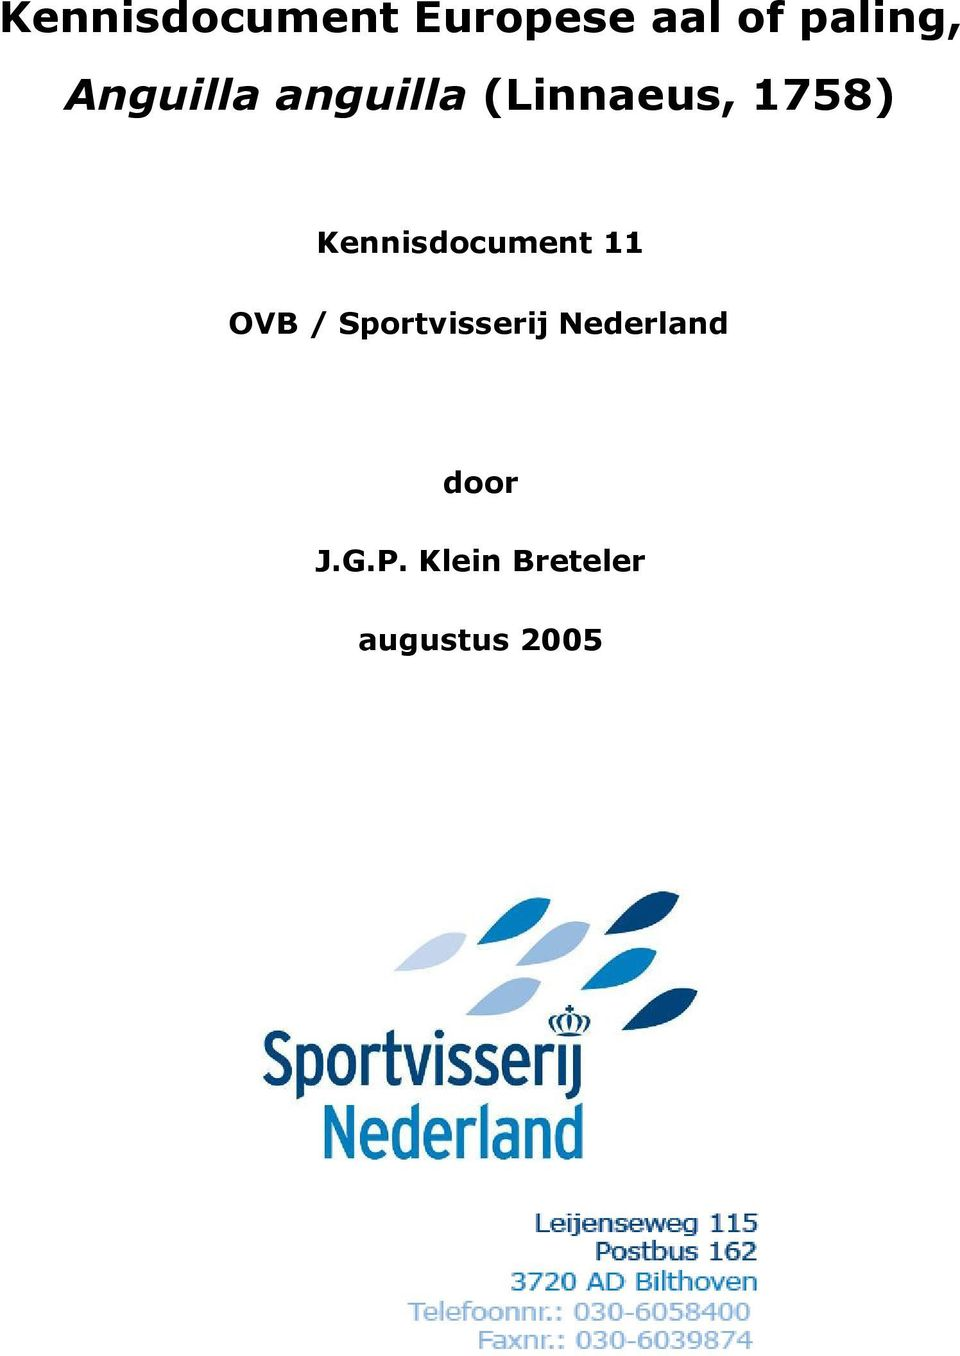 Kennisdocument 11 OVB / Sportvisserij